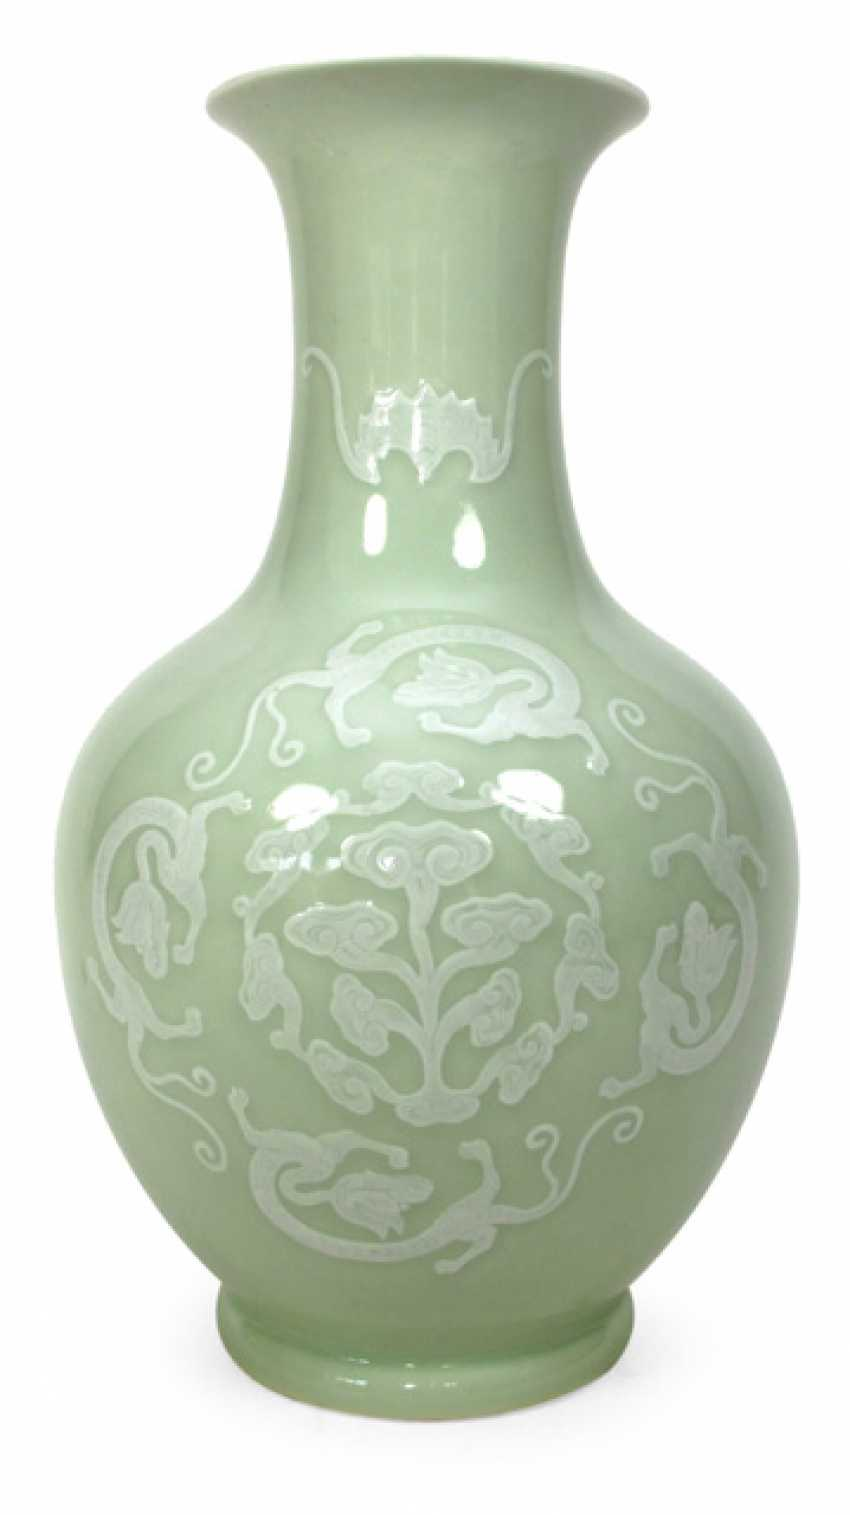 Celadon-colored Vase m. white decor v. dragon, bat & clouds in a light Relief - photo 1